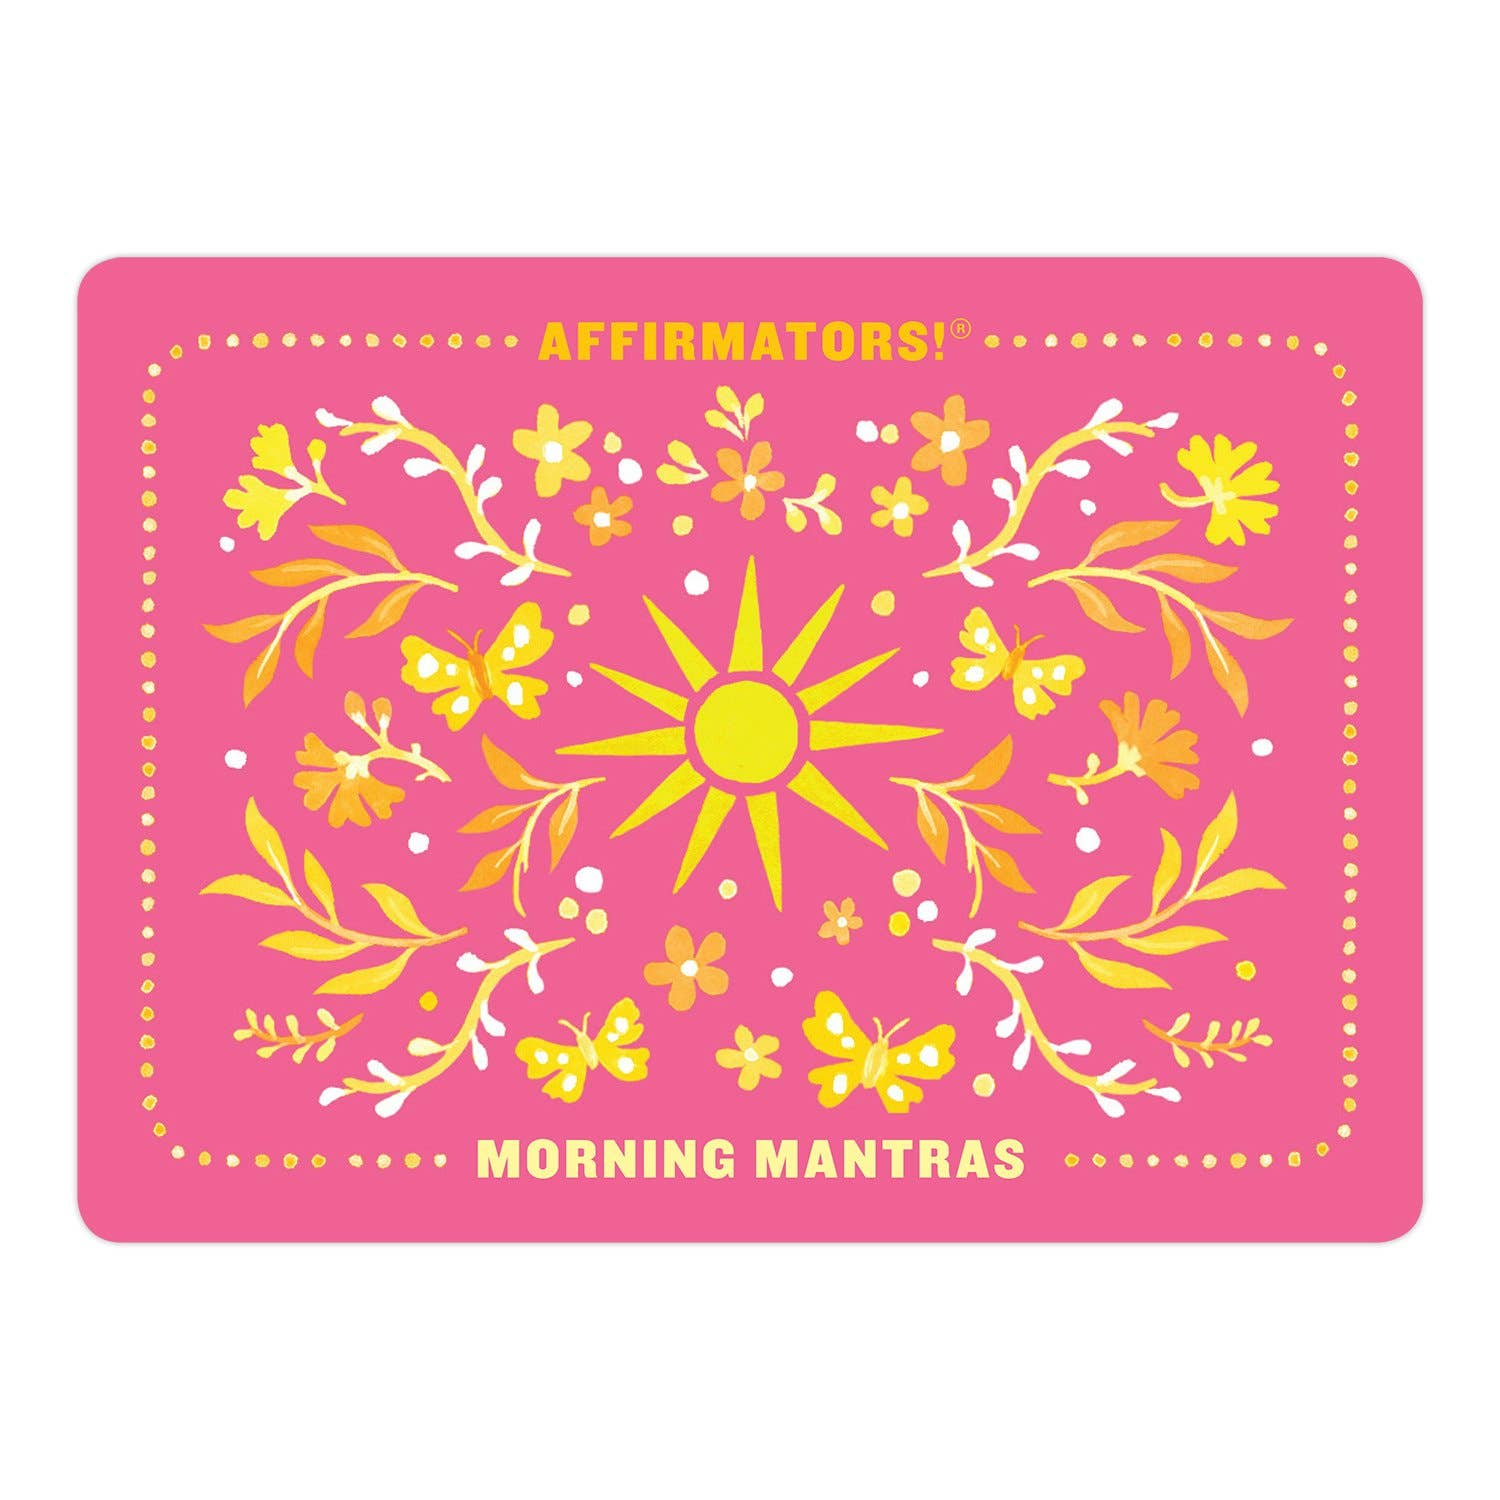 Affirmators! Morning Mantras Affirmators Mantras Deck | Positive Affirmations